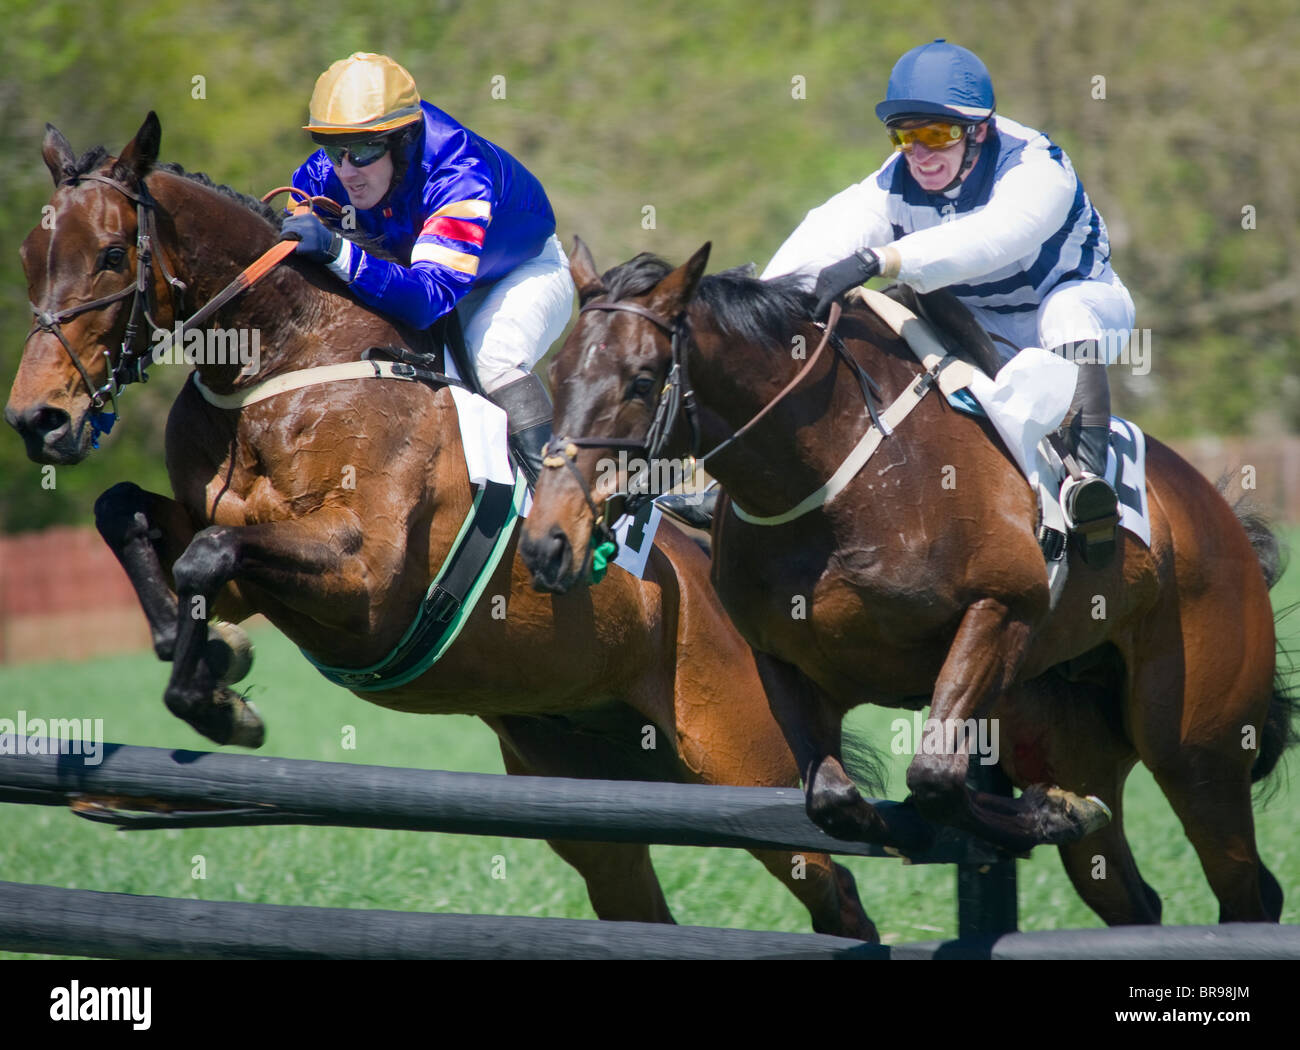 Horses jumping over fence - Manor Races, Maryland Stock Photo